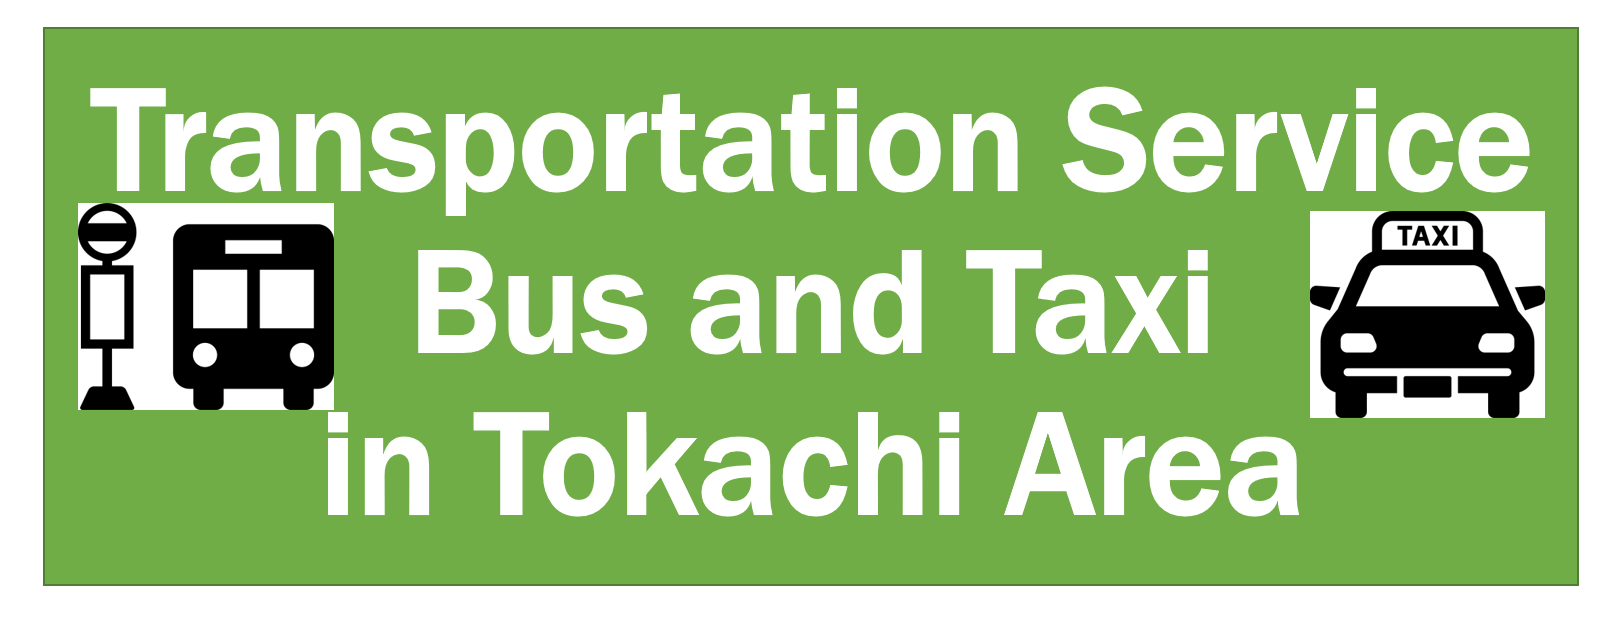 Tokachi Intermodal Passenger Transport Promotion Association